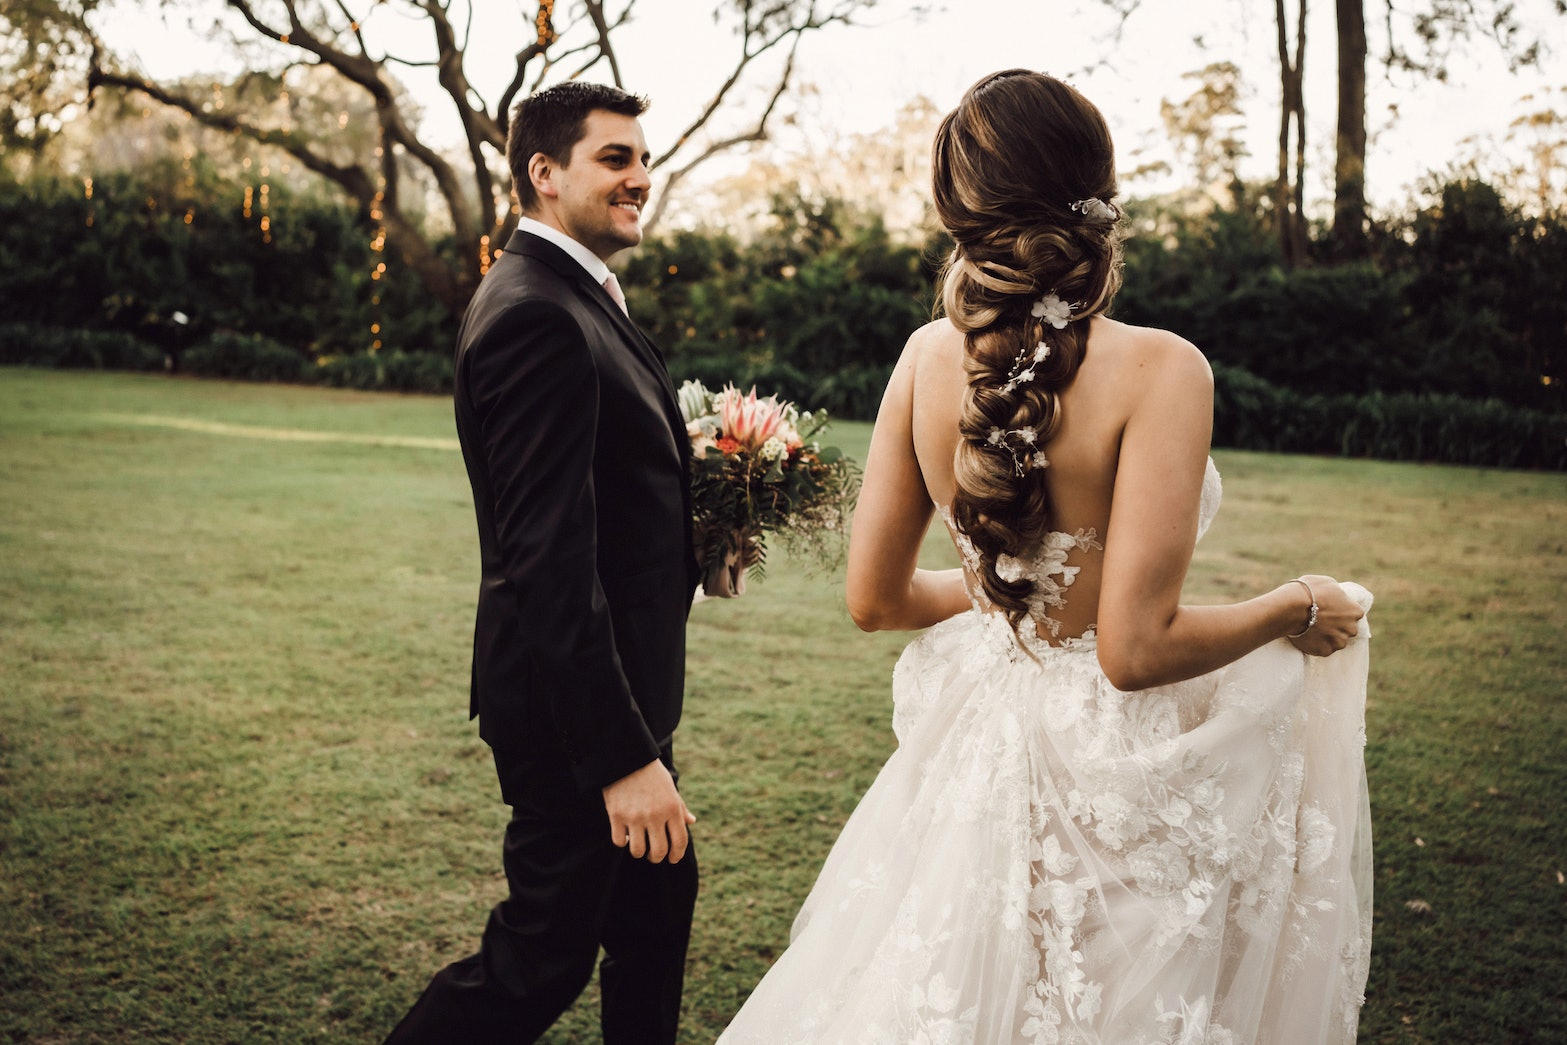 Bride and groom walking through gardens looking at one another